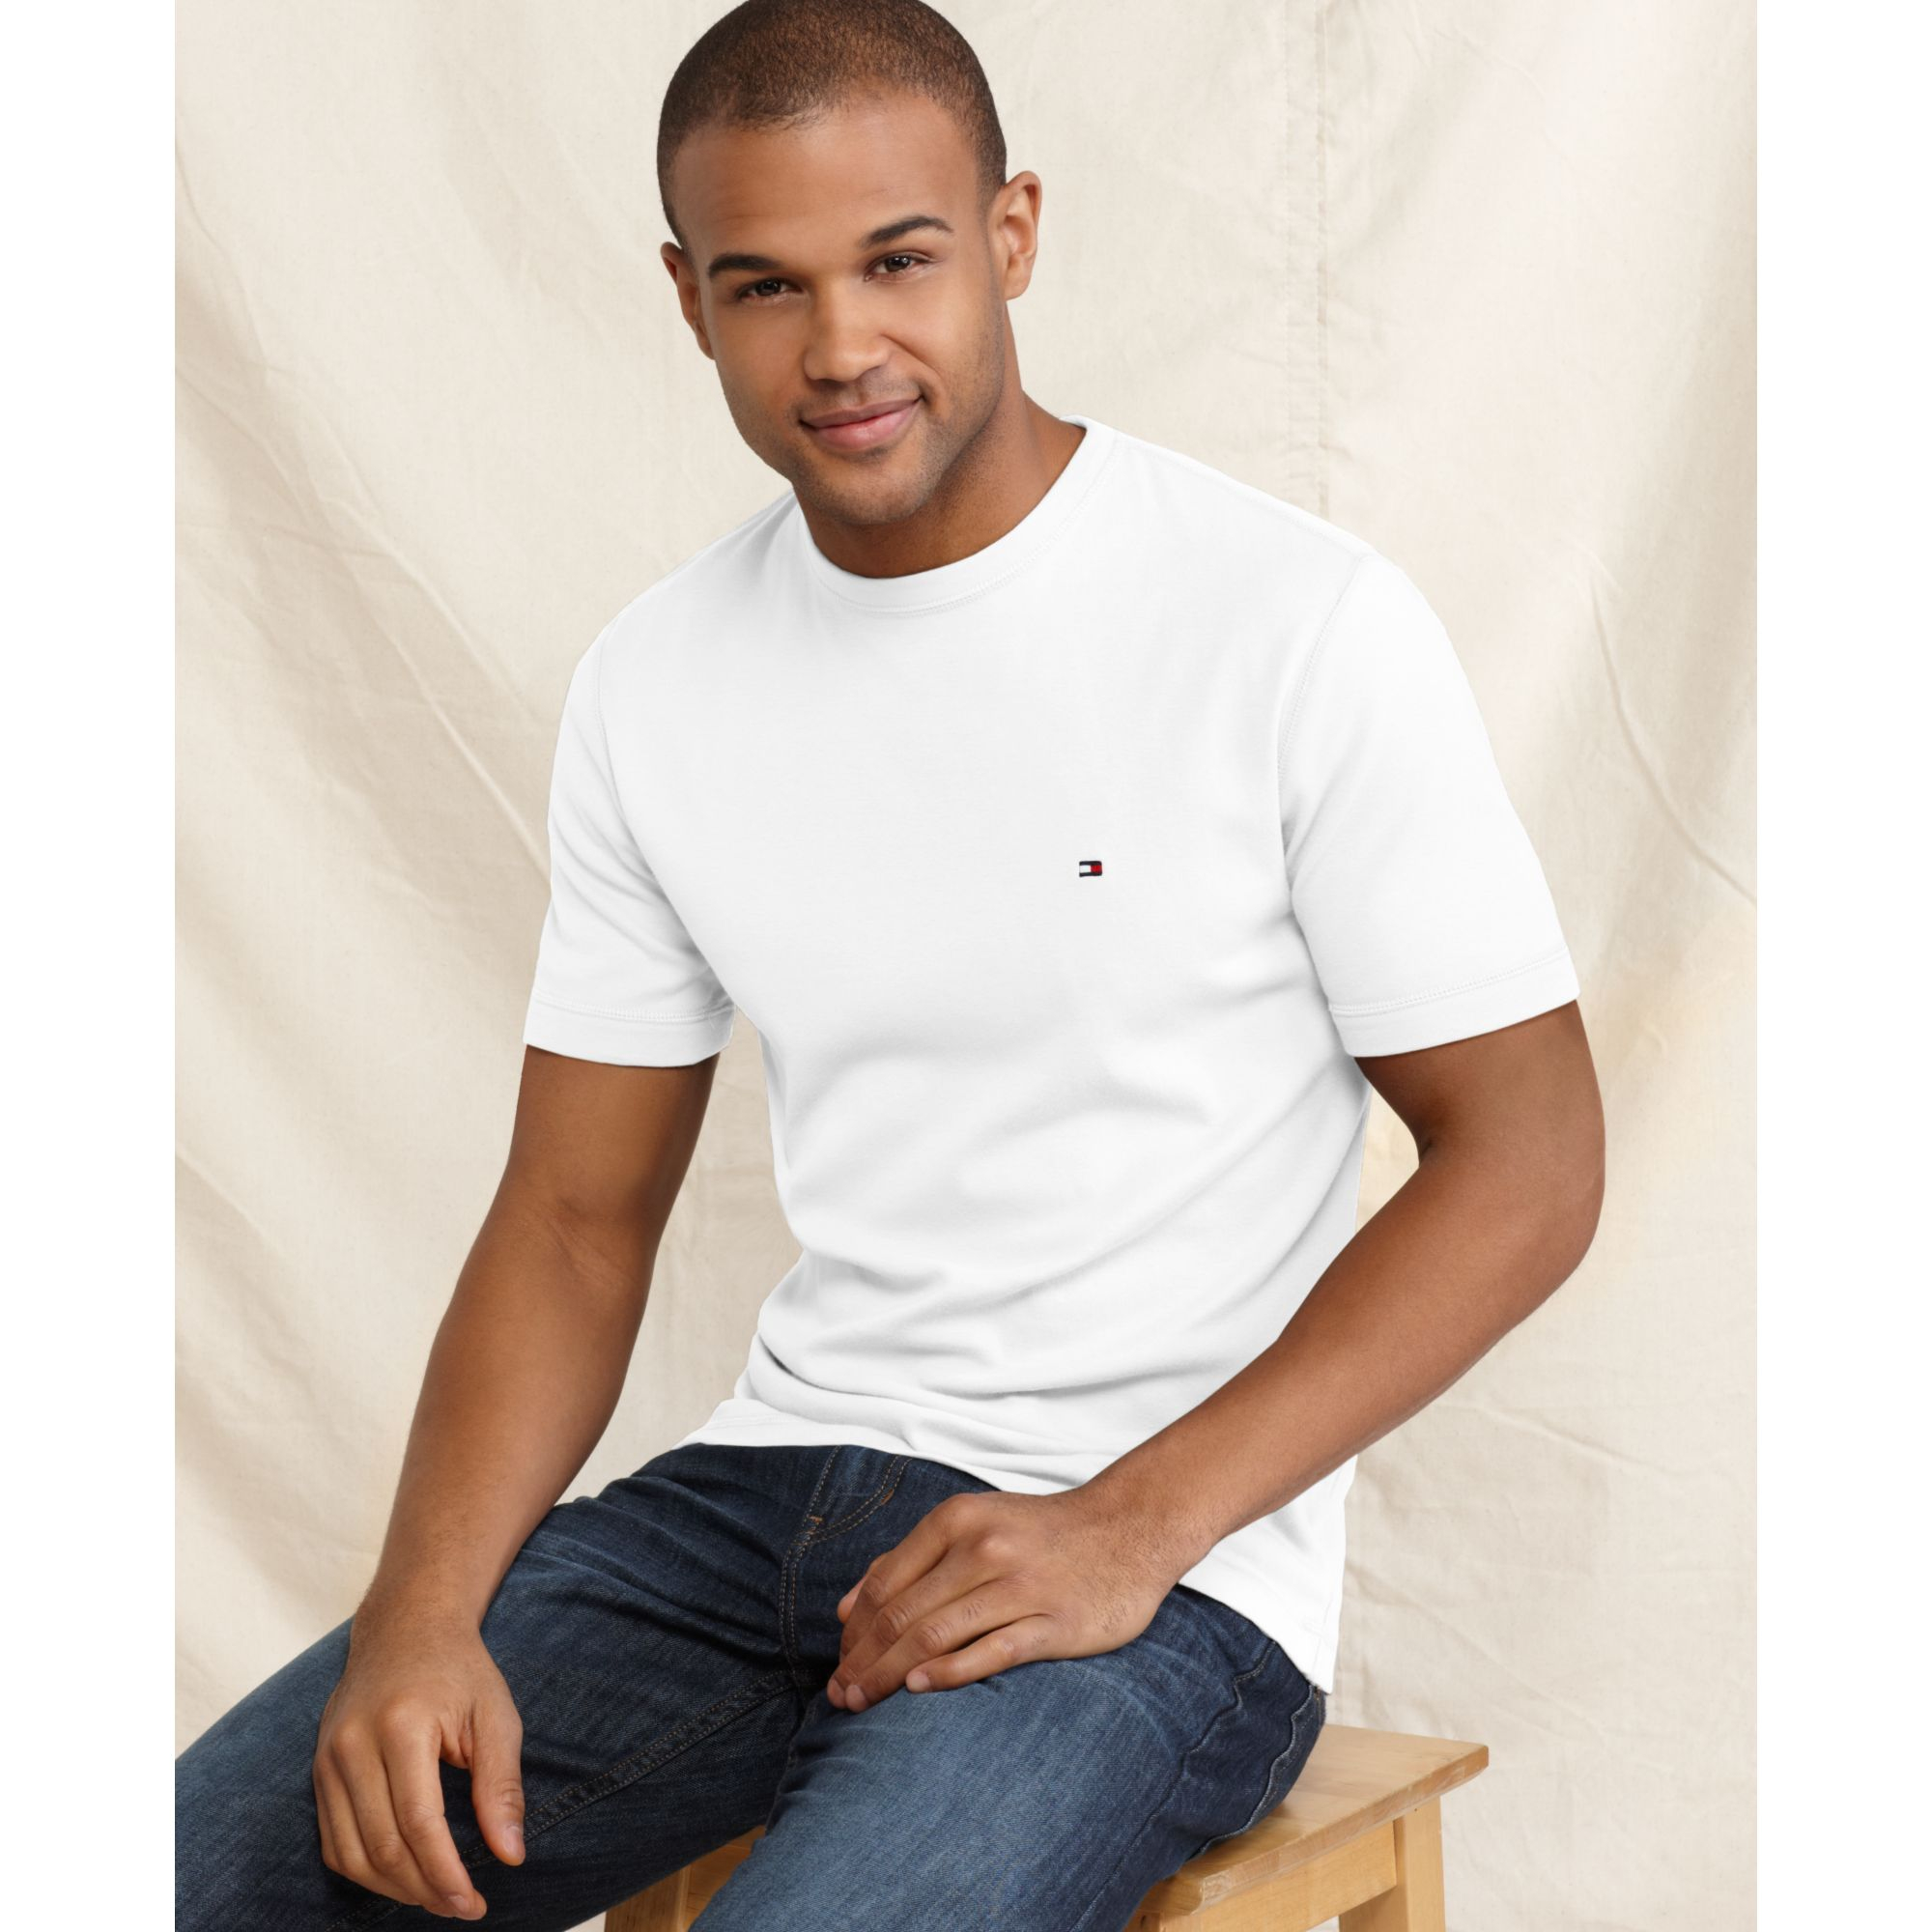 c4535b116 Tommy Hilfiger American T Shirt in White for Men - Lyst